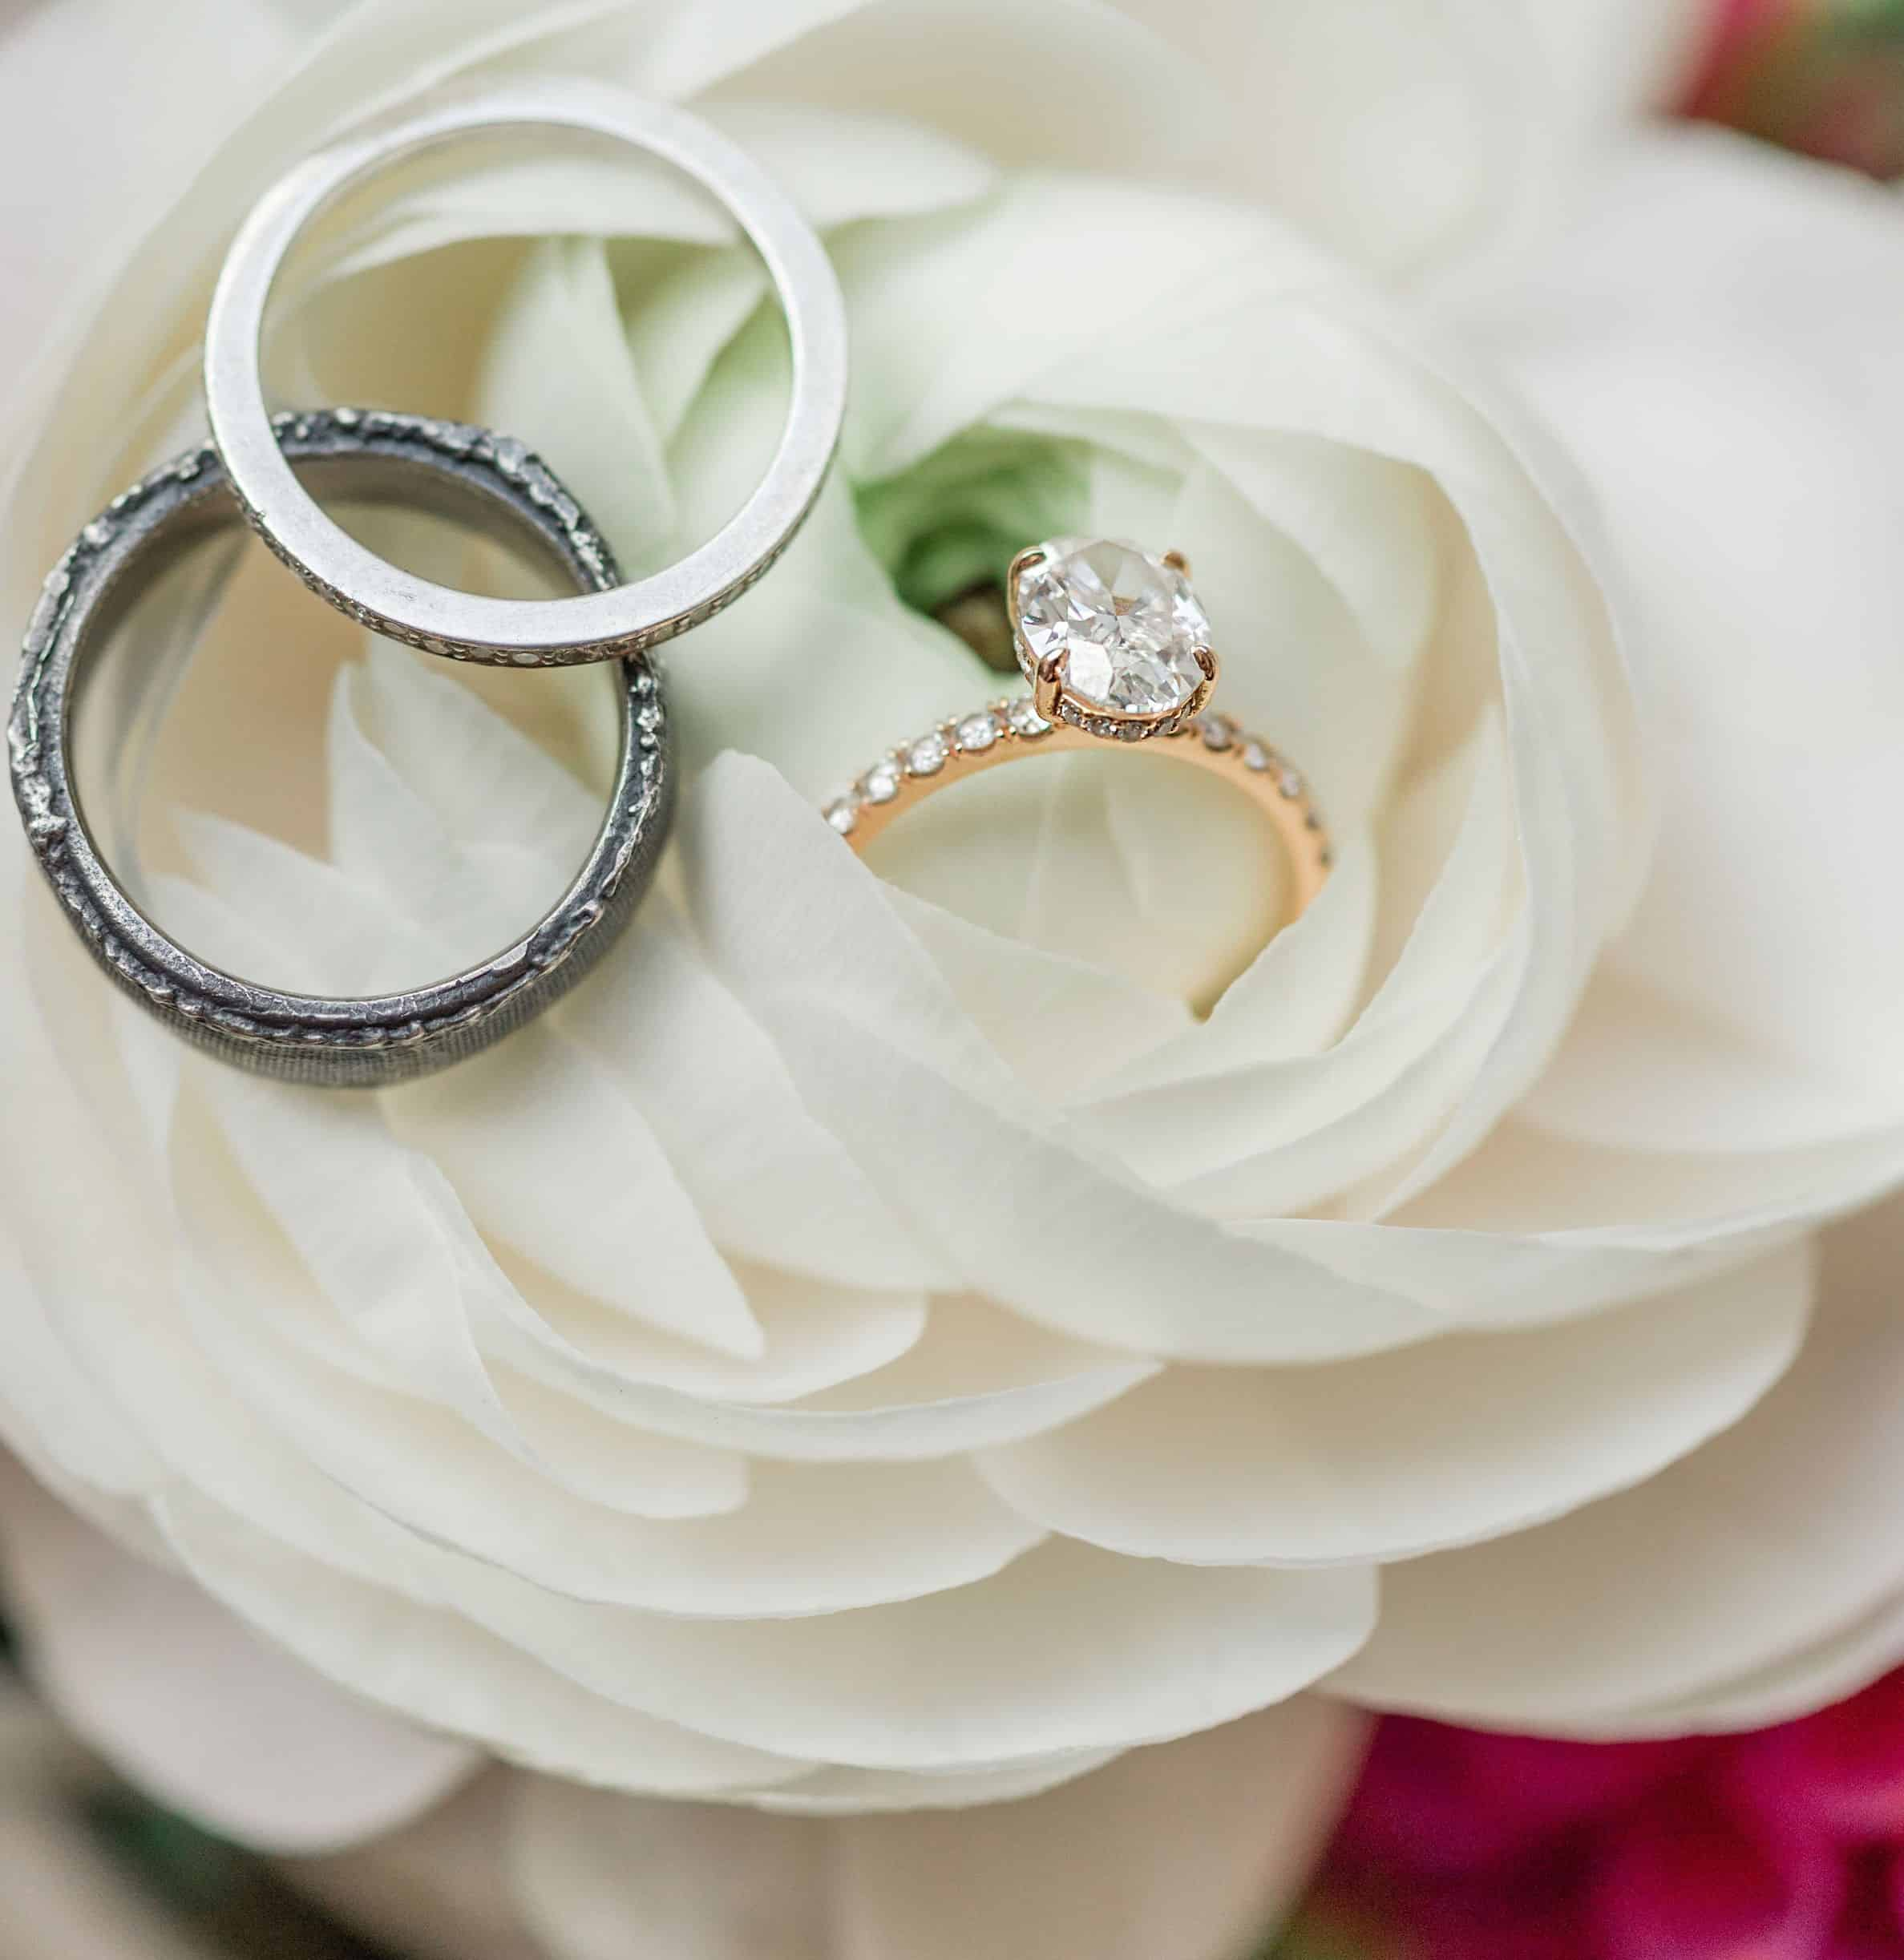 wedding rings resting on a white rose